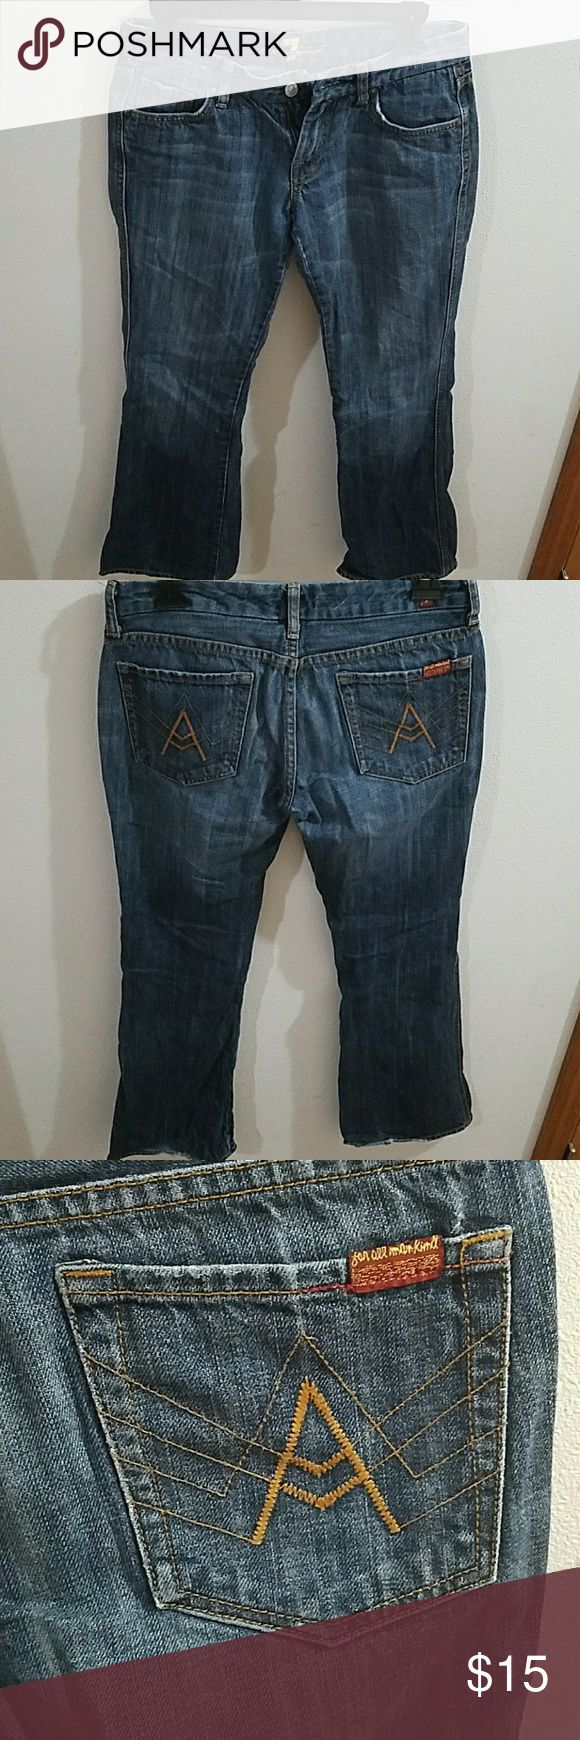 7 For All Mankind Size 27 Women's Jeans 7 For All Mankind Size 27 Women's Jeans. Have been loved and show some wear with wear to the bottom hems of legs. Not worn through but thinning on inner upper thigh. The inseam is about 30 inches in length. 5 pocket design with a classic 7 For All Mankind button closure. 7 For All Mankind Jeans